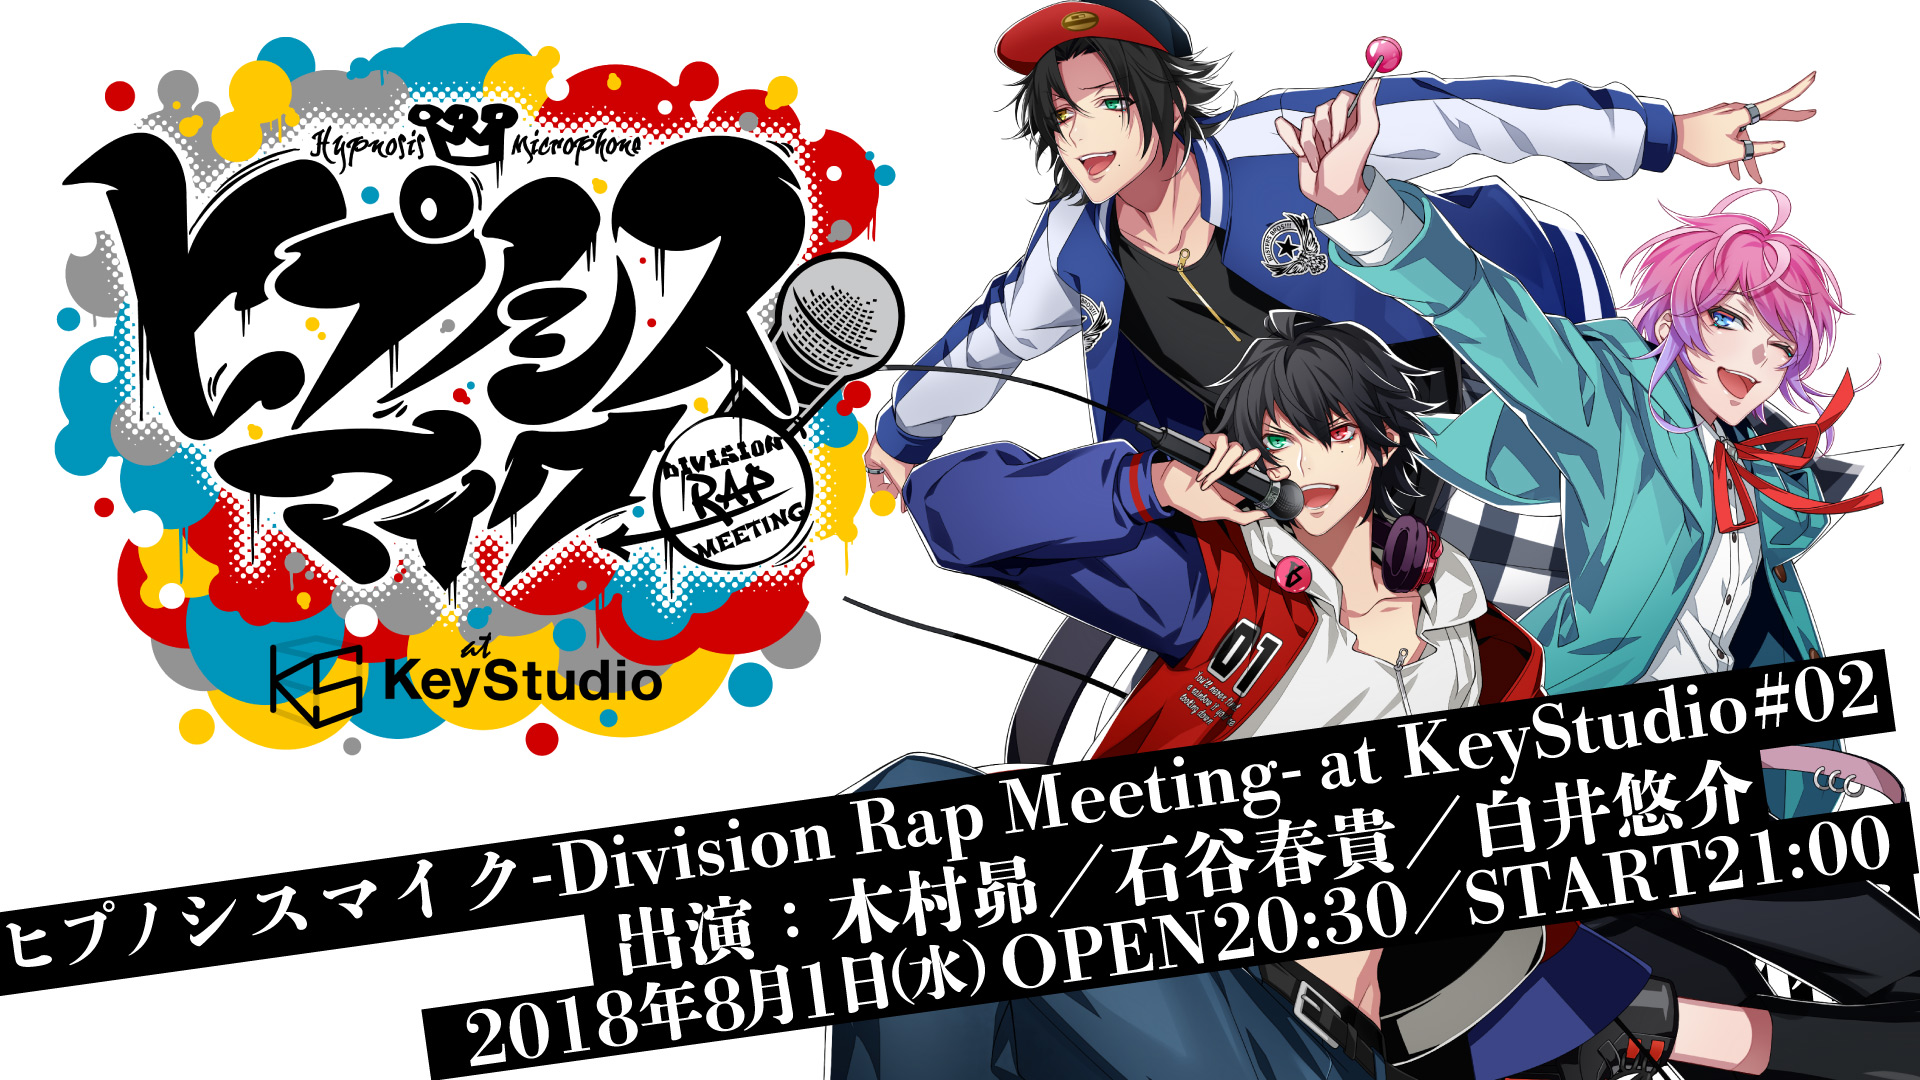 ヒプノシスマイク-Division Rap Meeting-at KeyStudio#2